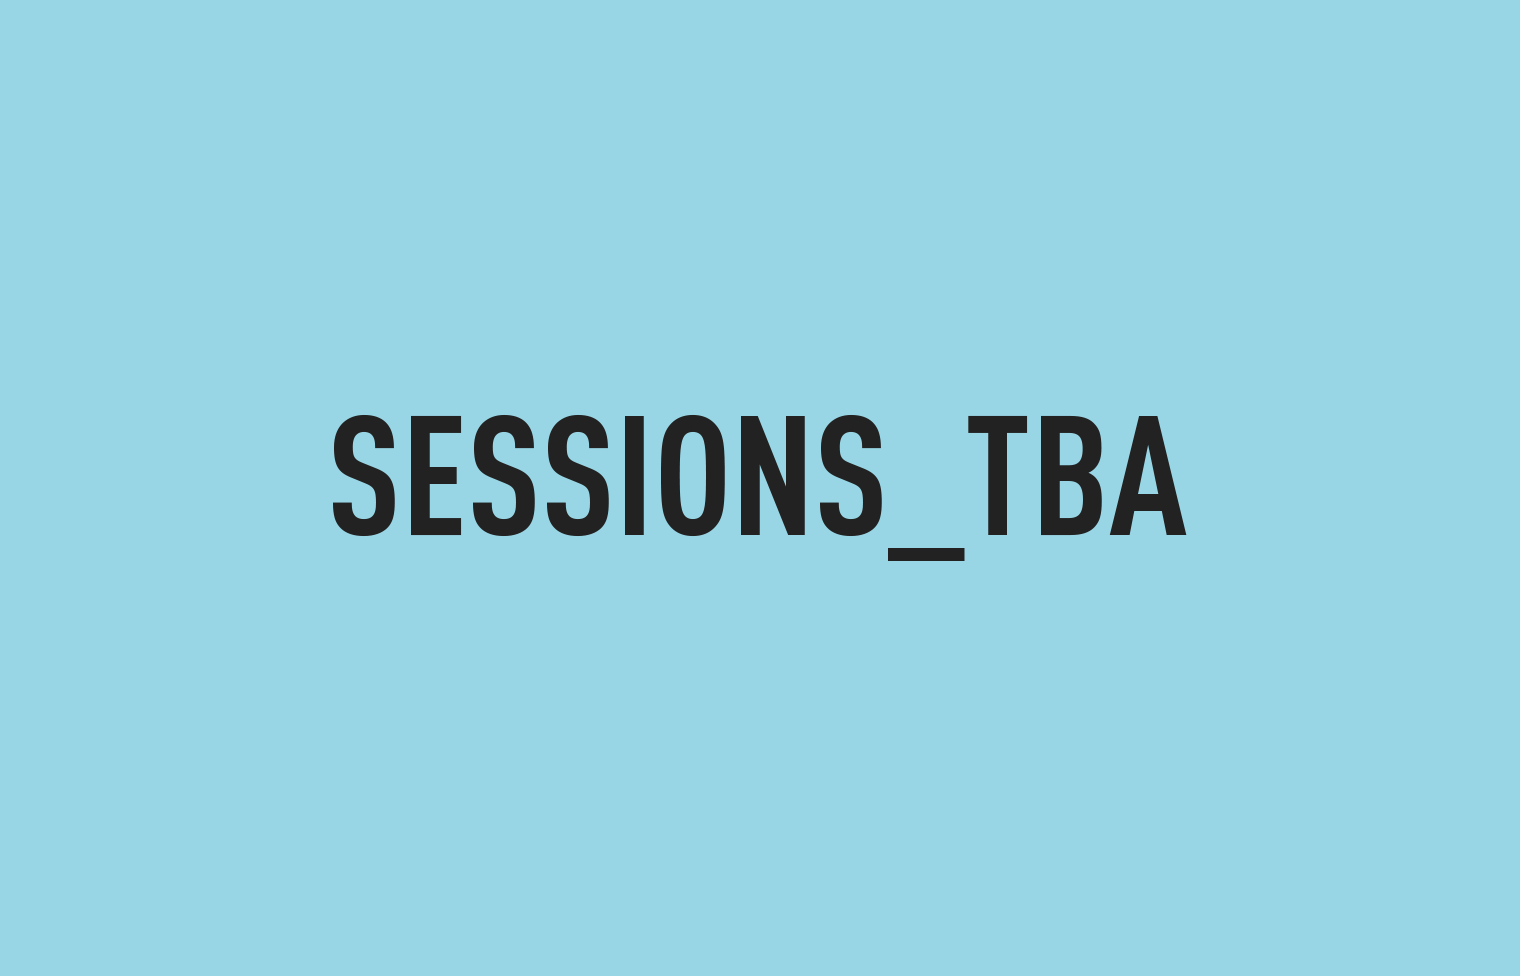 SessionsTBA.png